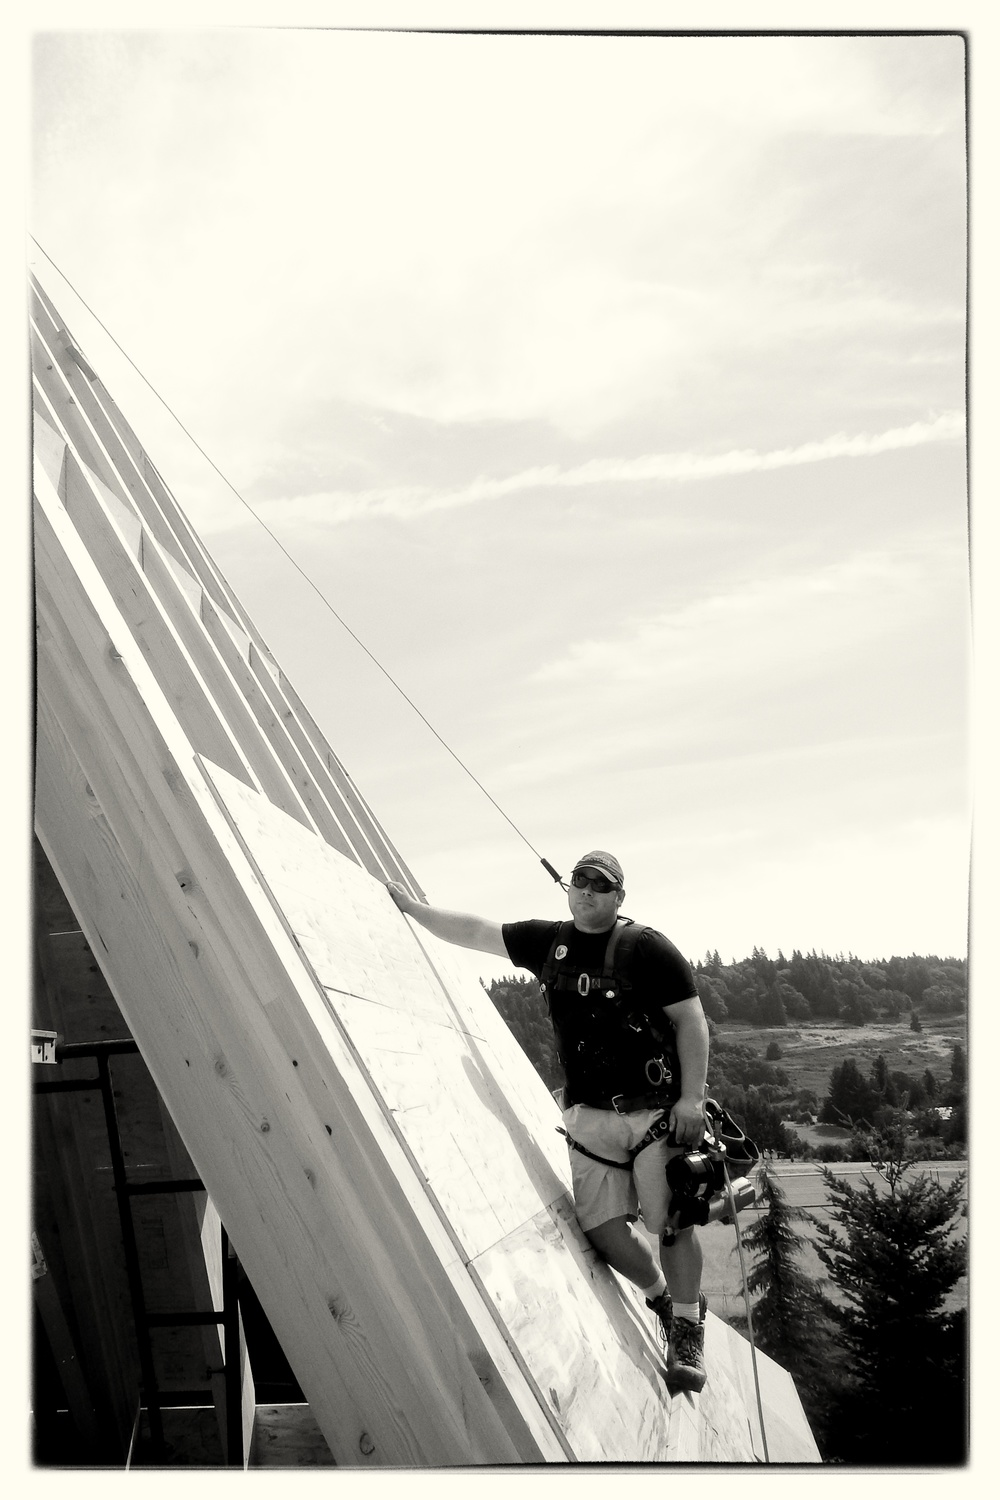 Sheeting Steep Roof With Fall Protection - West Linn